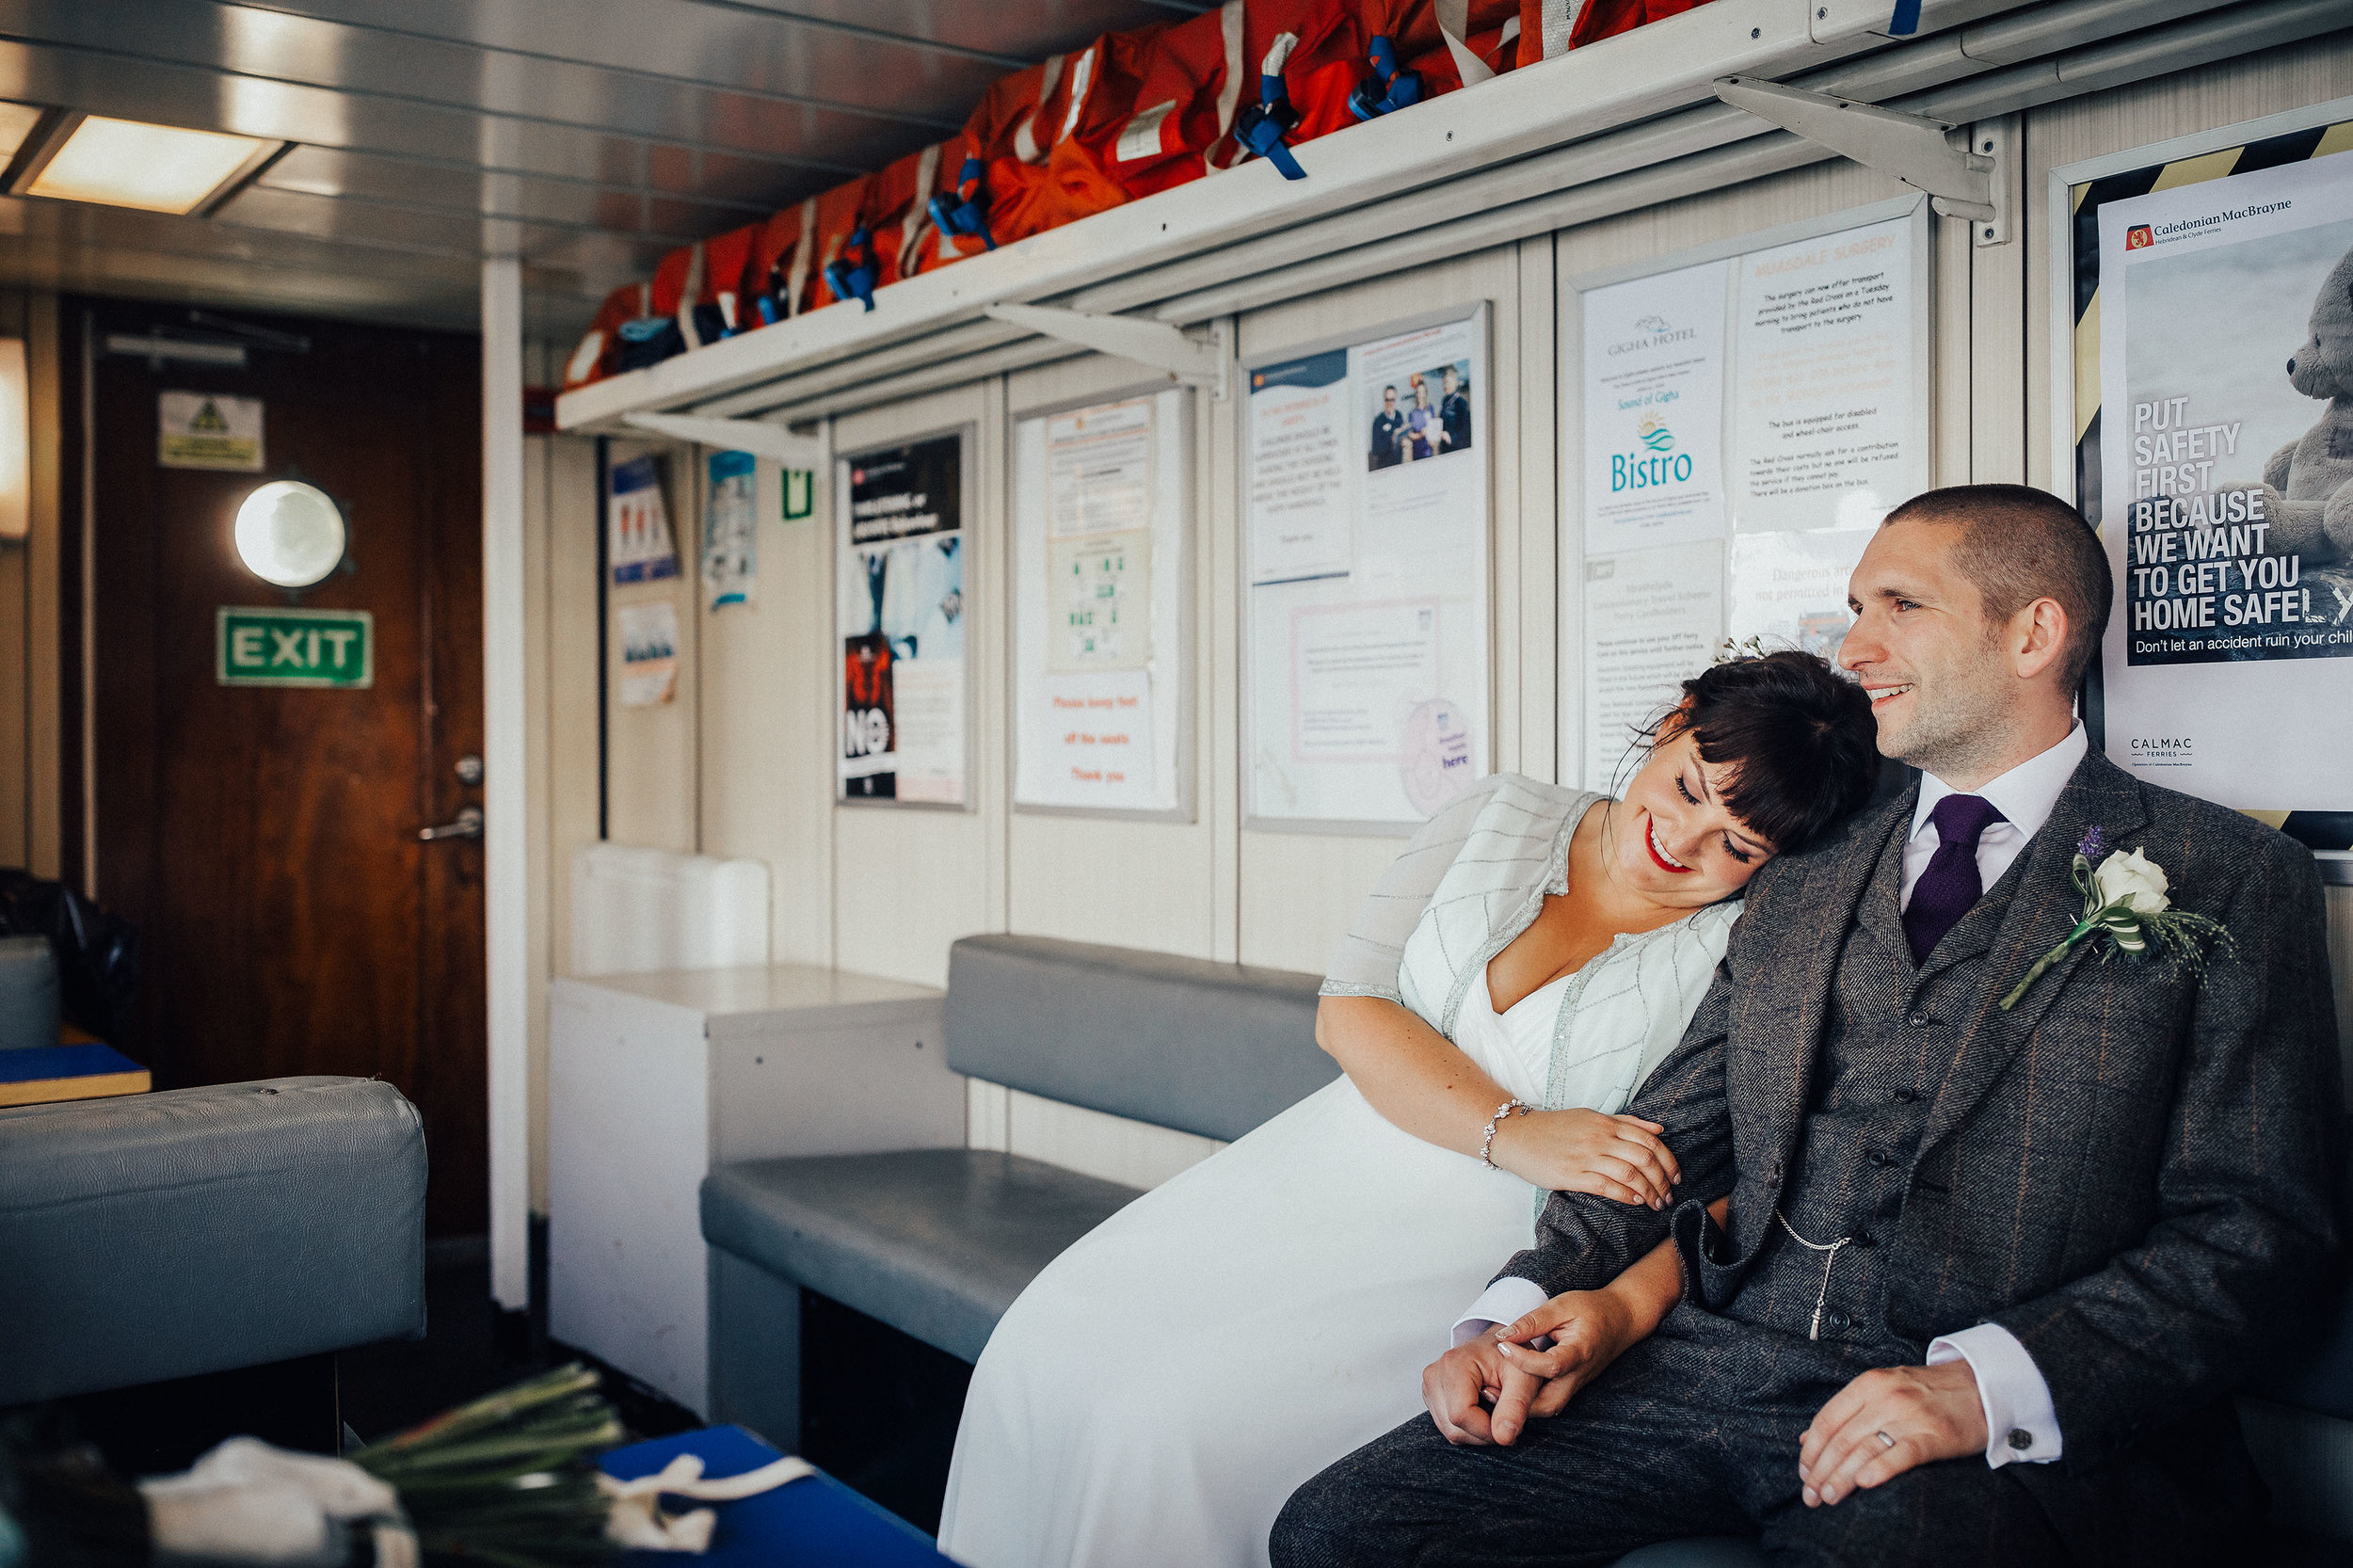 SCOTTISH_ELOPEMENT_PHOTOGRAPHER_PJ_PHILLIPS_PHOTOGRAPHY_146.jpg